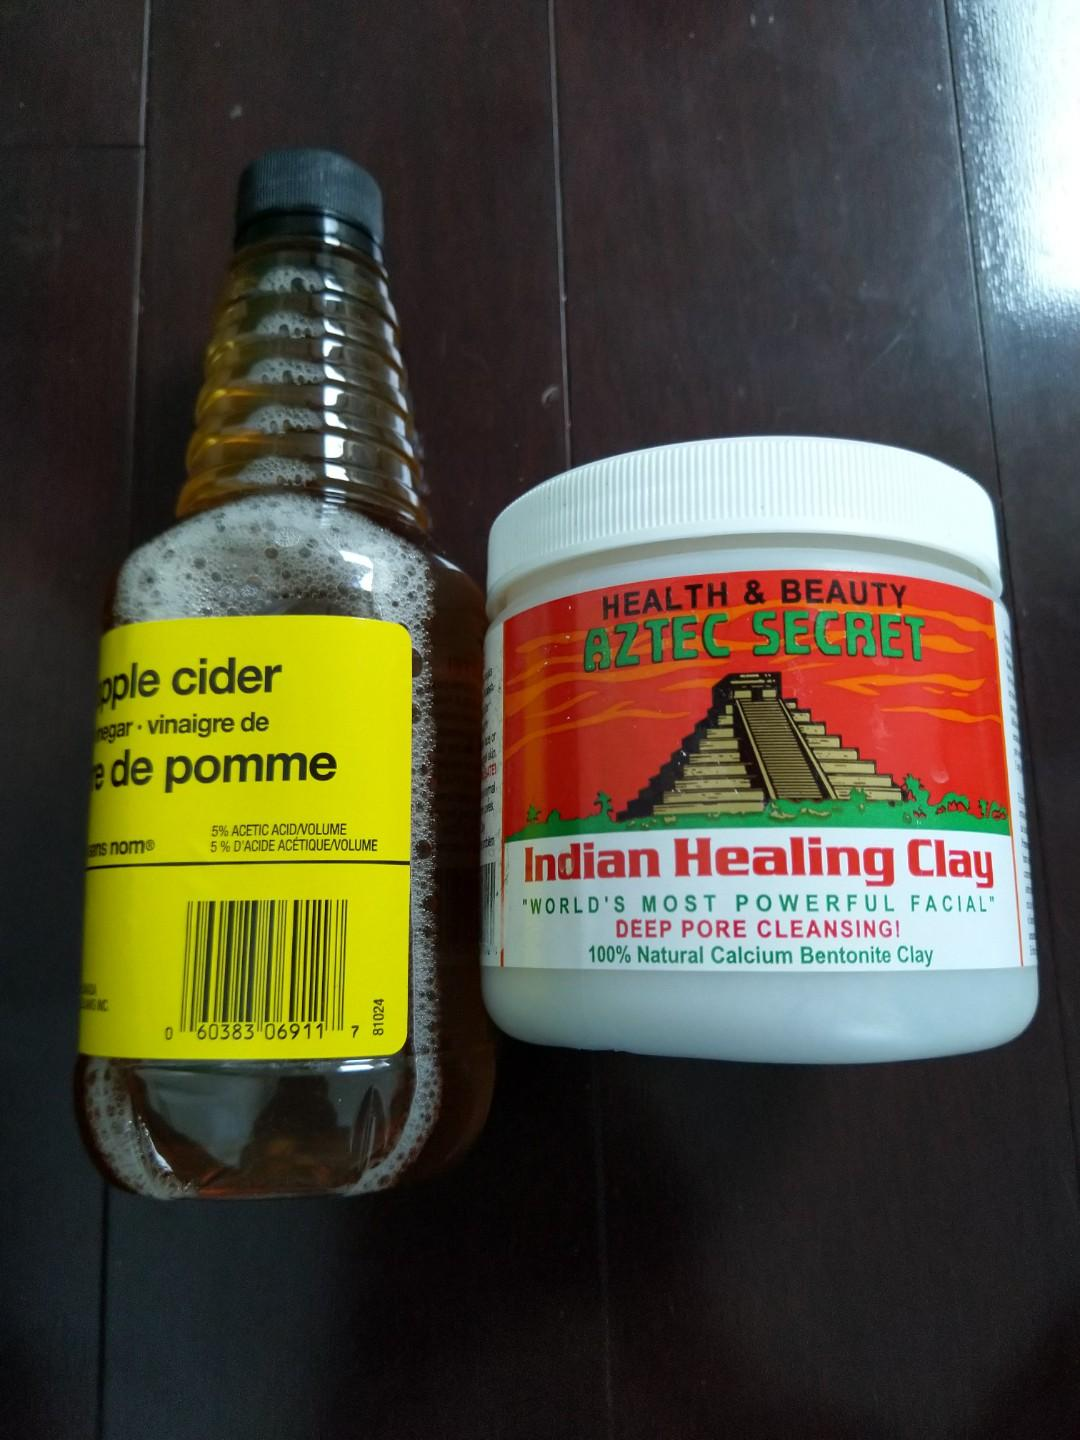 Indian Healing Clay & Apple Cider Vinegar (only used once)